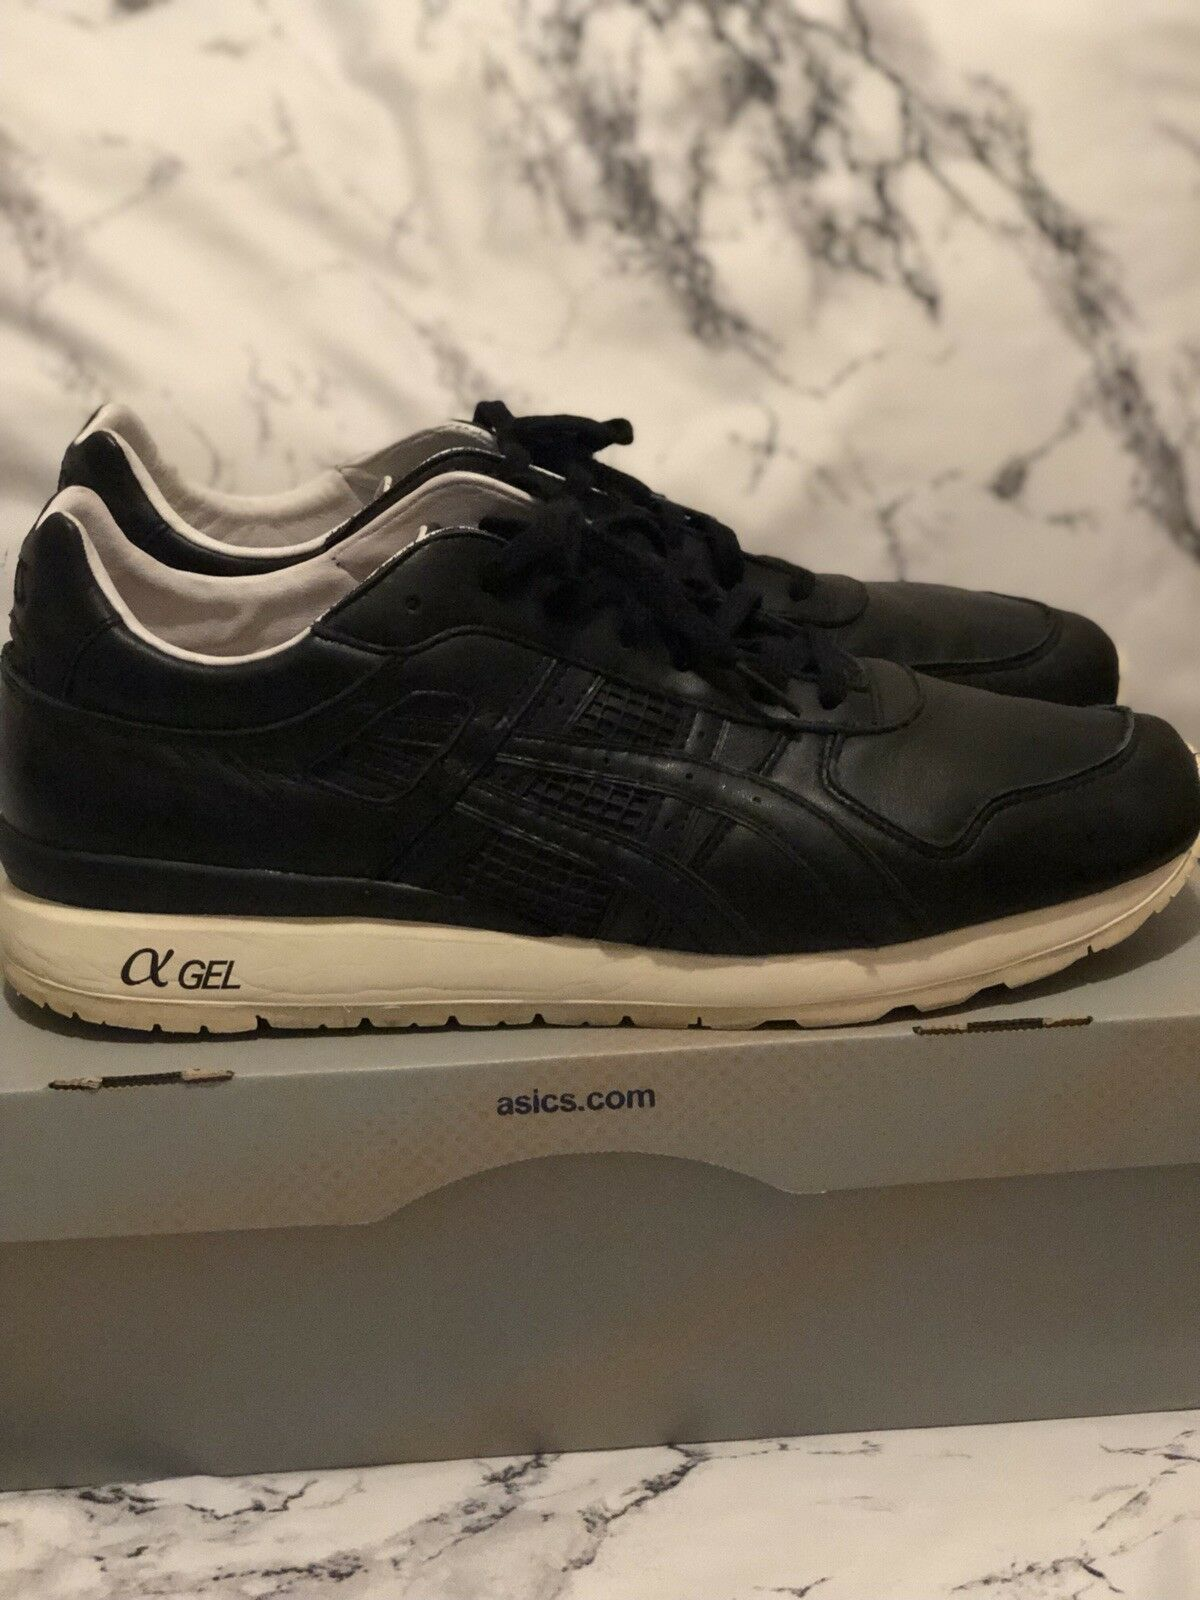 Asics GT-II KITH Grand Opening Ronnie Fieg Size 13